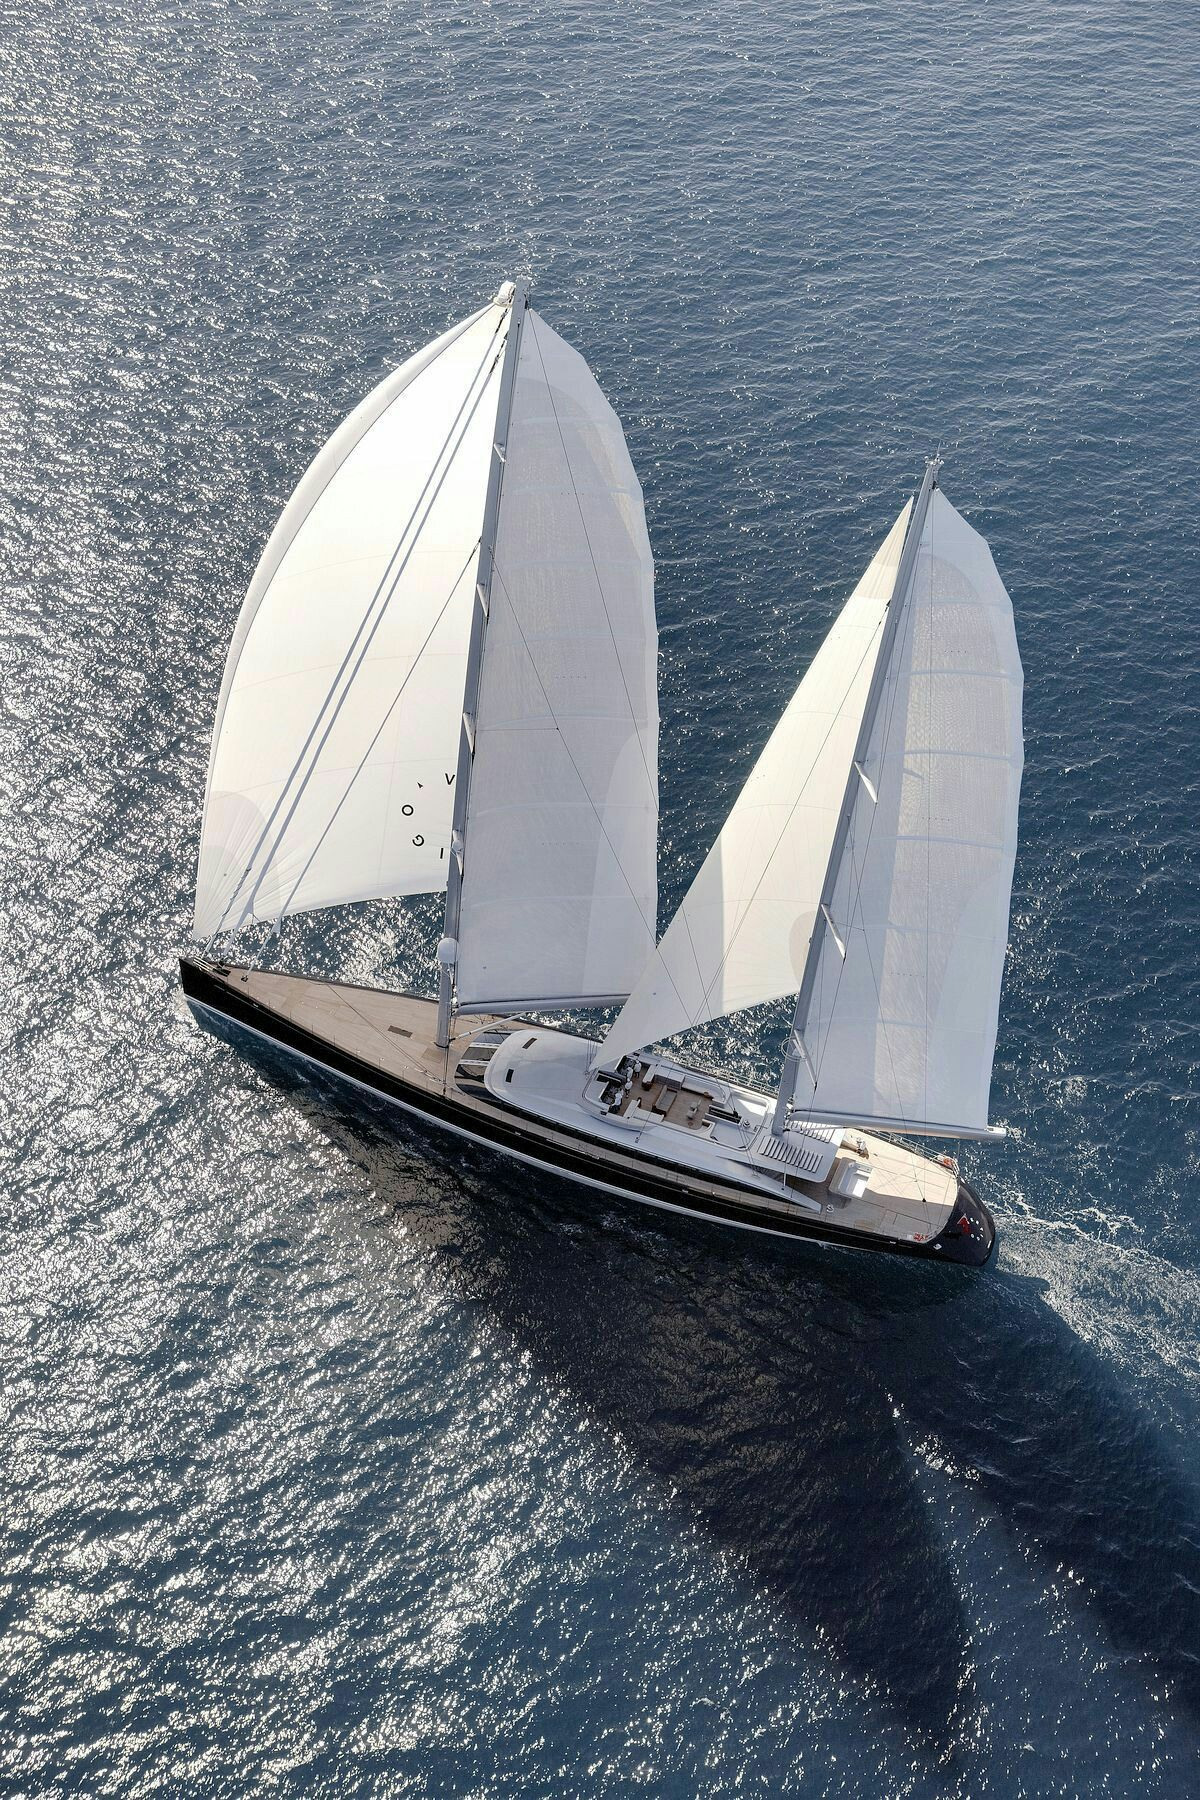 Pin By 三鳥 On Sailing Boat Sailing Yacht Luxury Yachts